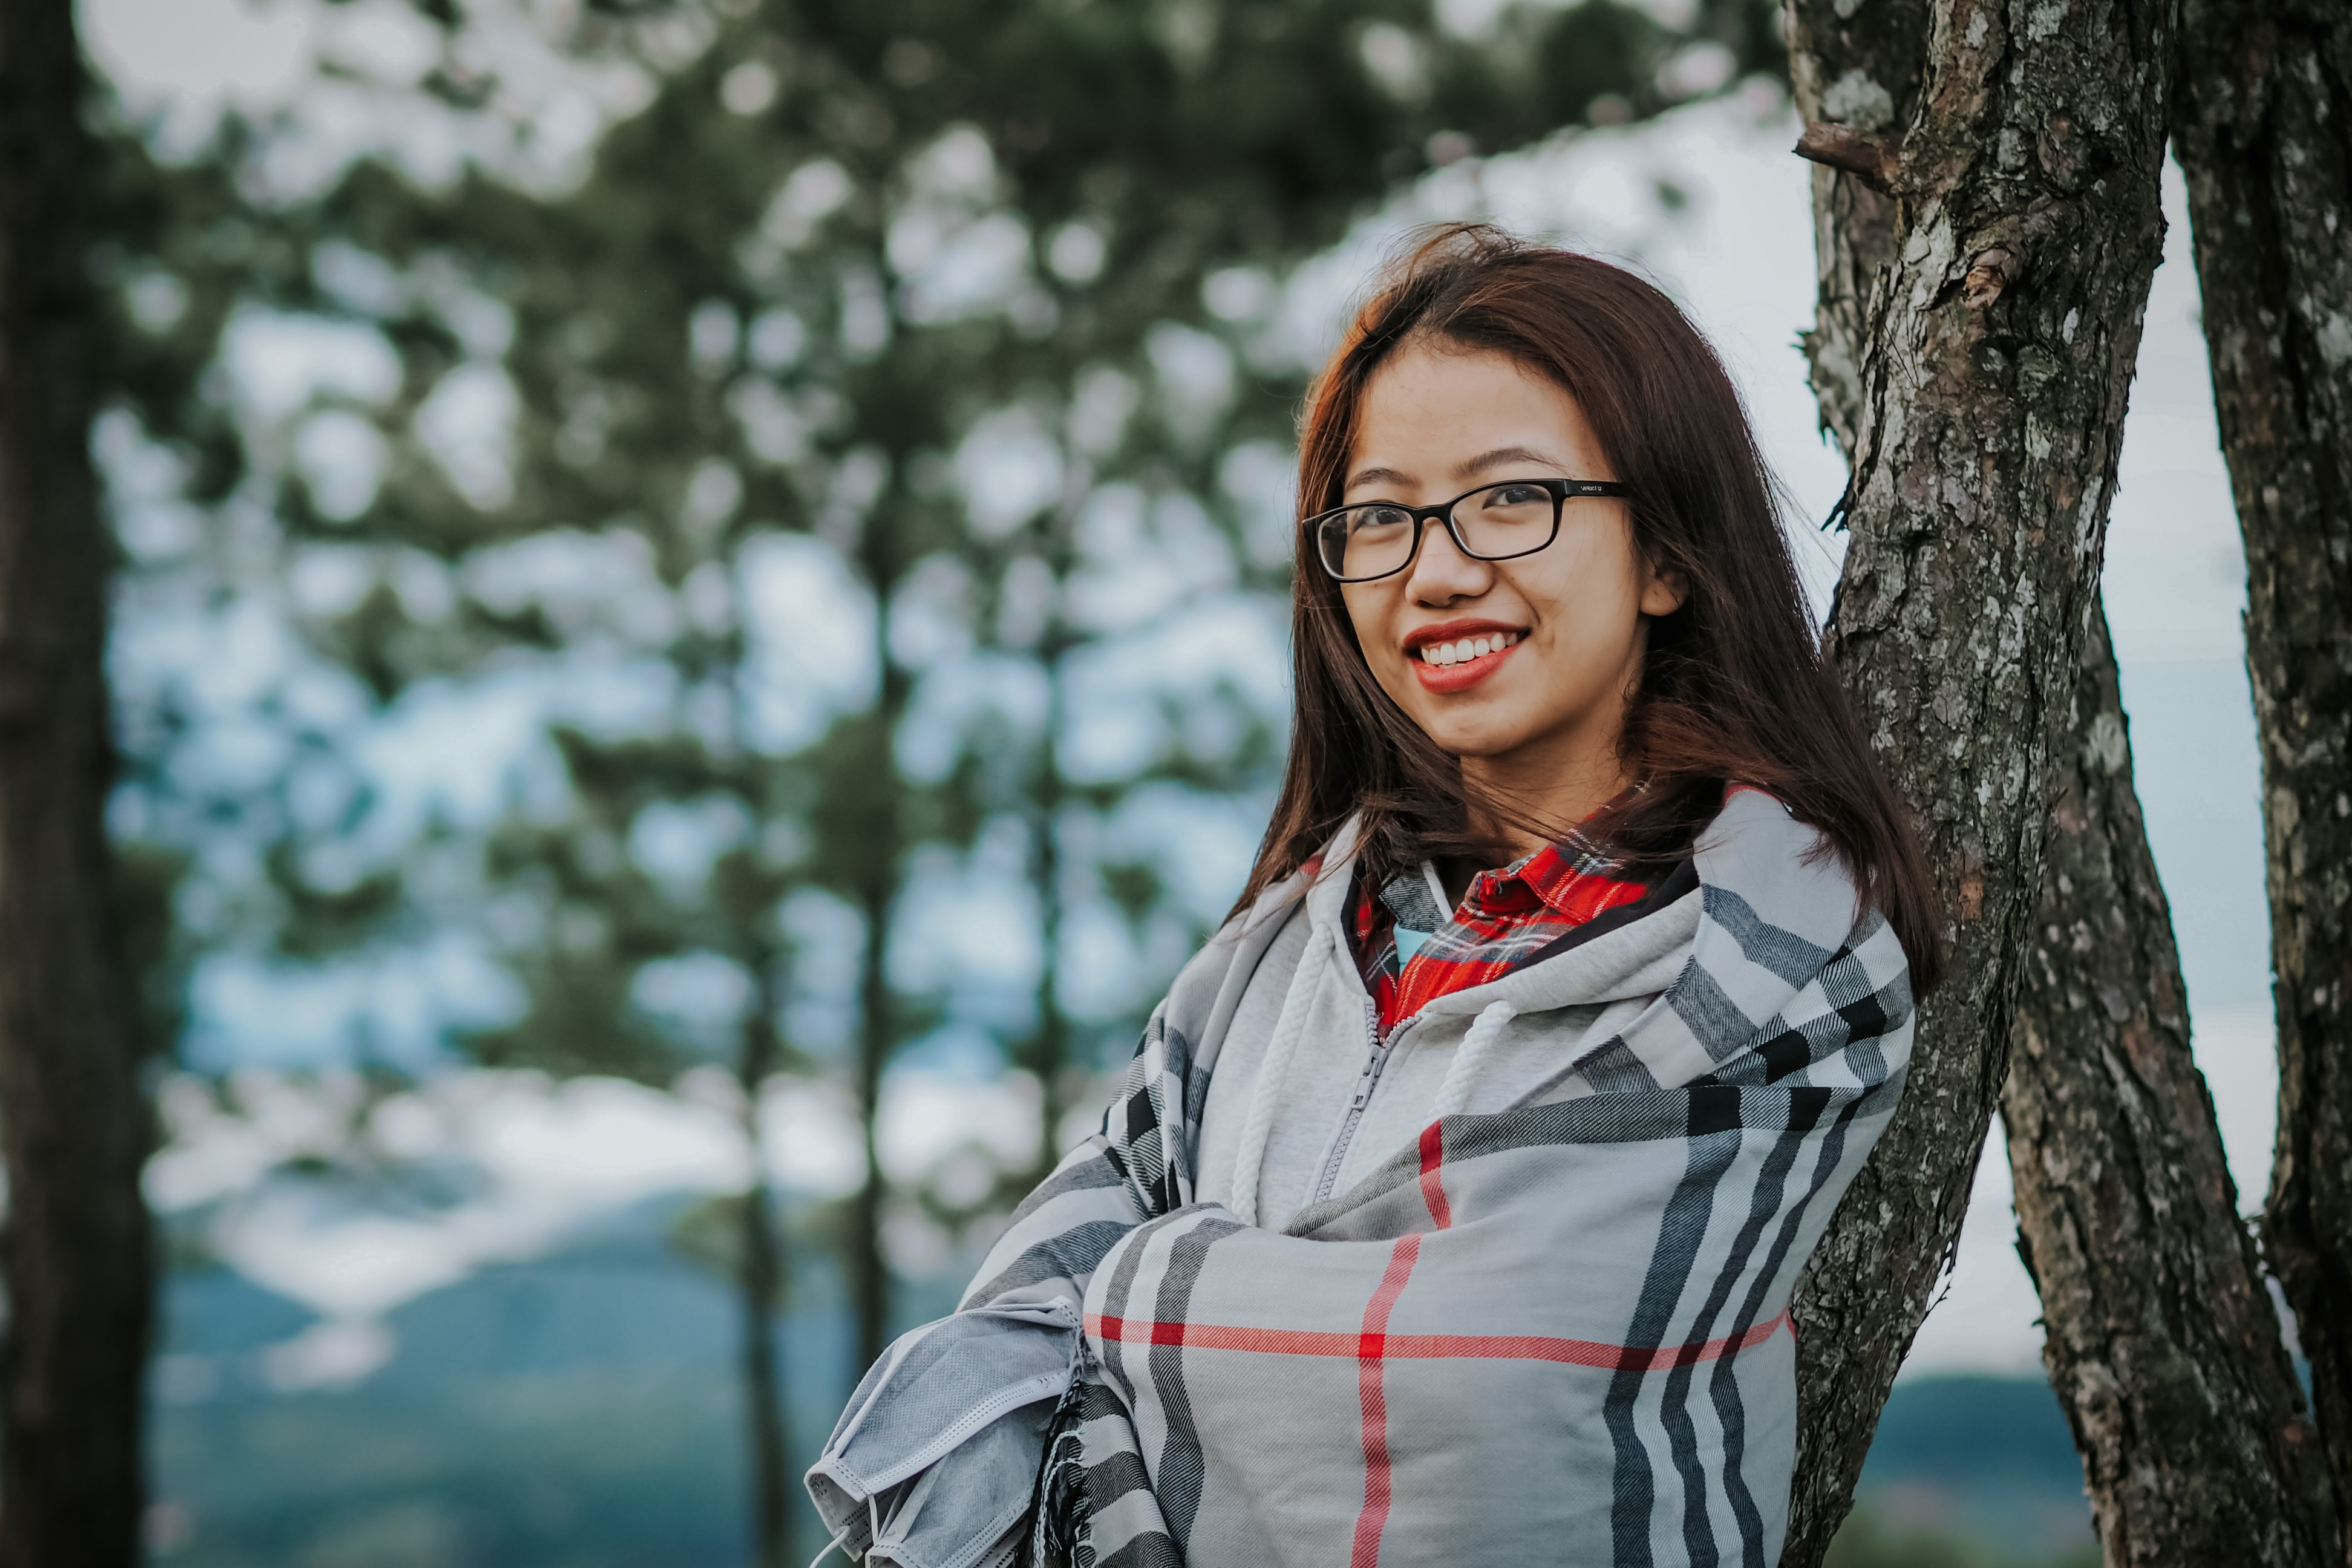 A smiling woman in glasses and a plaid cape leans against a tree in Dalat